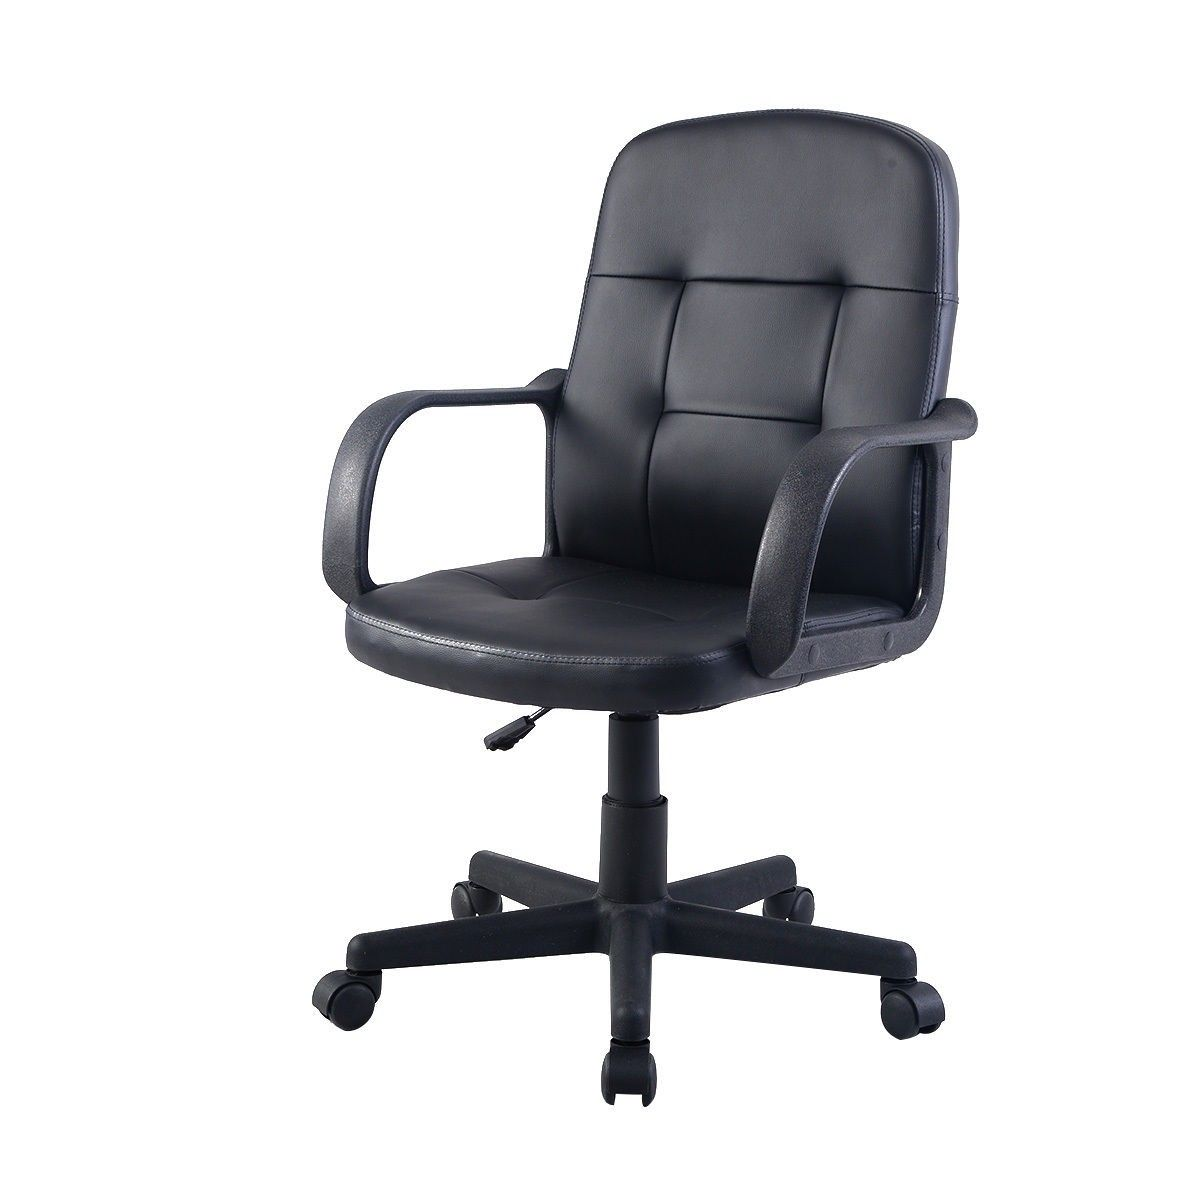 Pu leather ergonomic midback office chair office chair